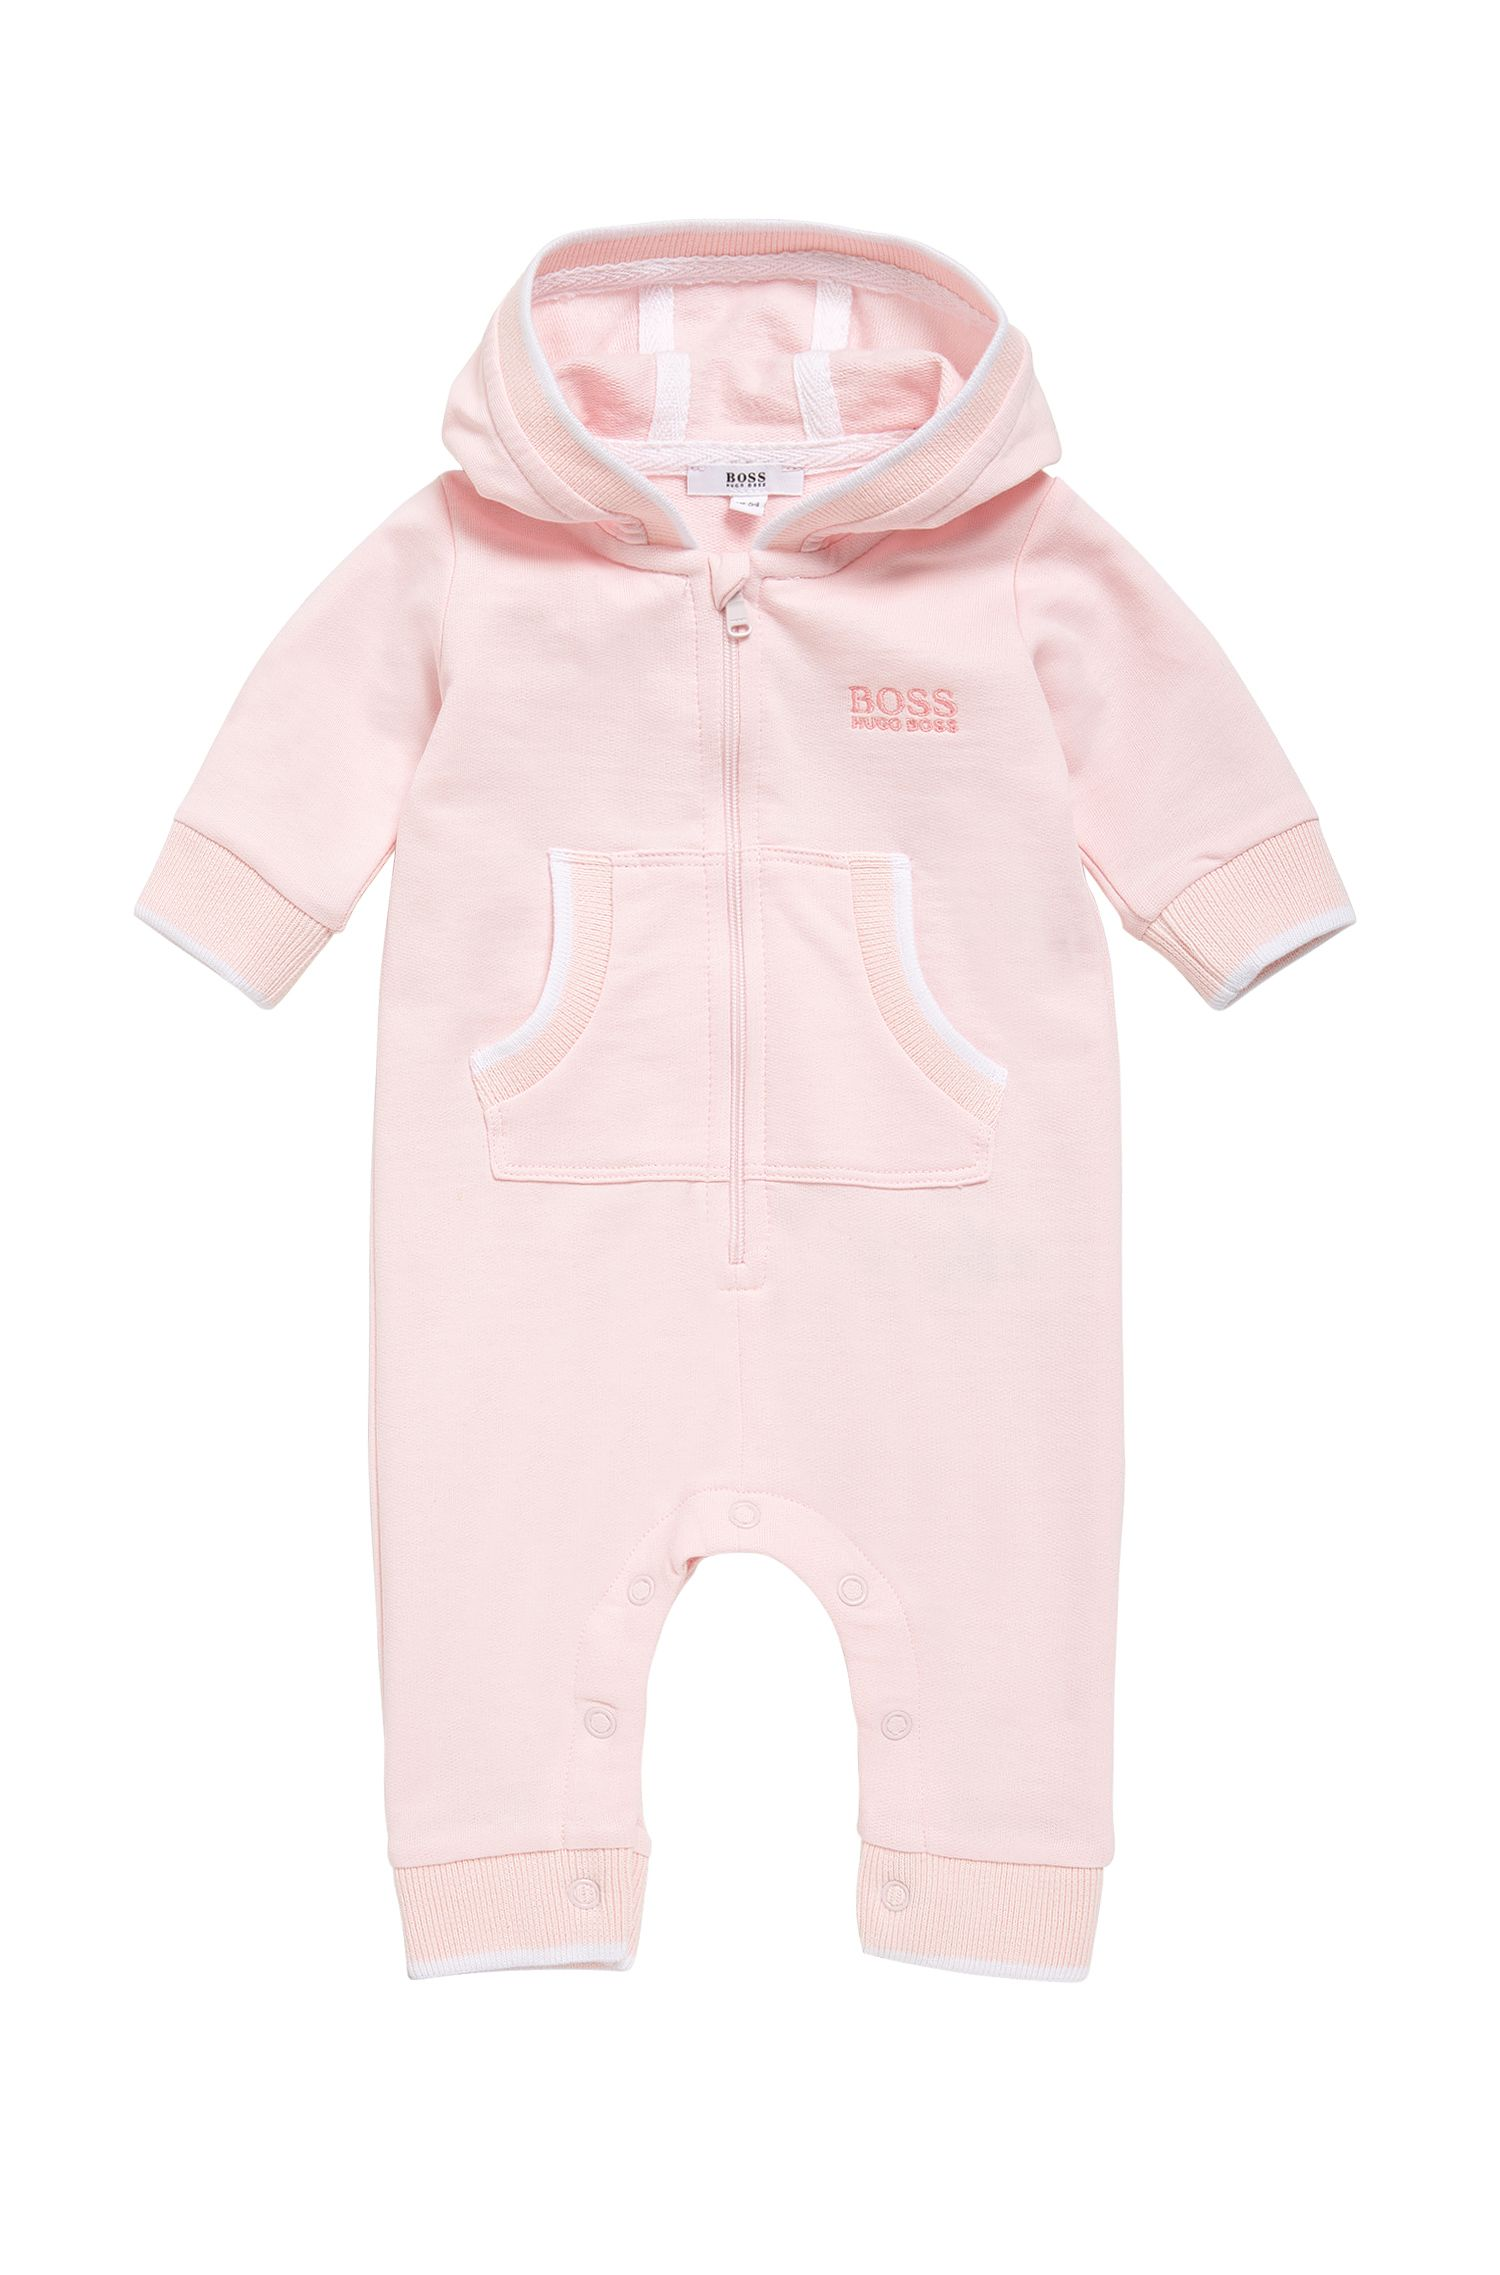 Hooded cotton overalls for newborns: 'J94172'